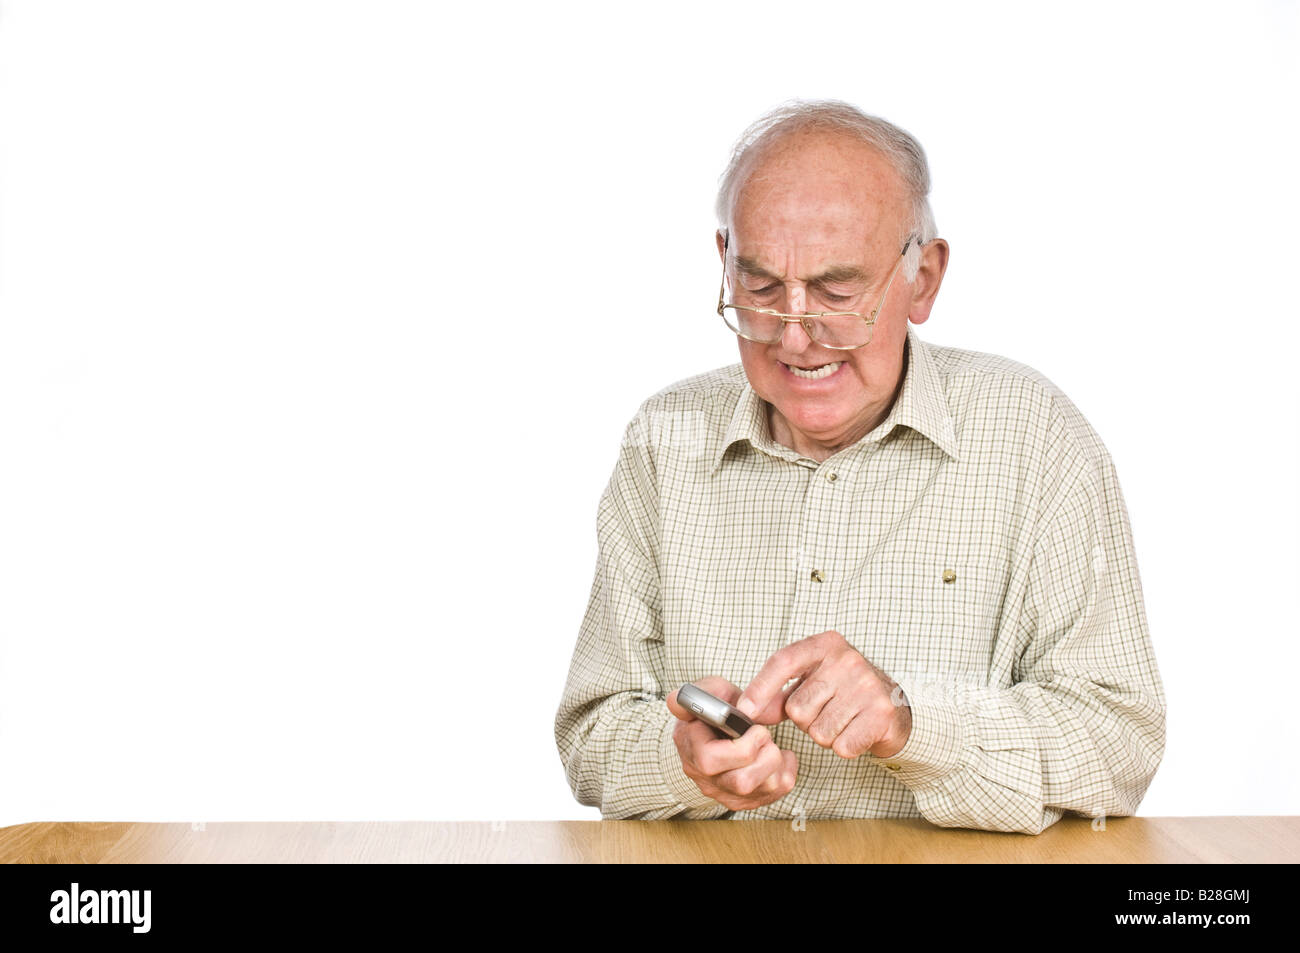 An elderly man getting frustrated trying to text or use the mobile phone with the small buttons and numbers. - Stock Image